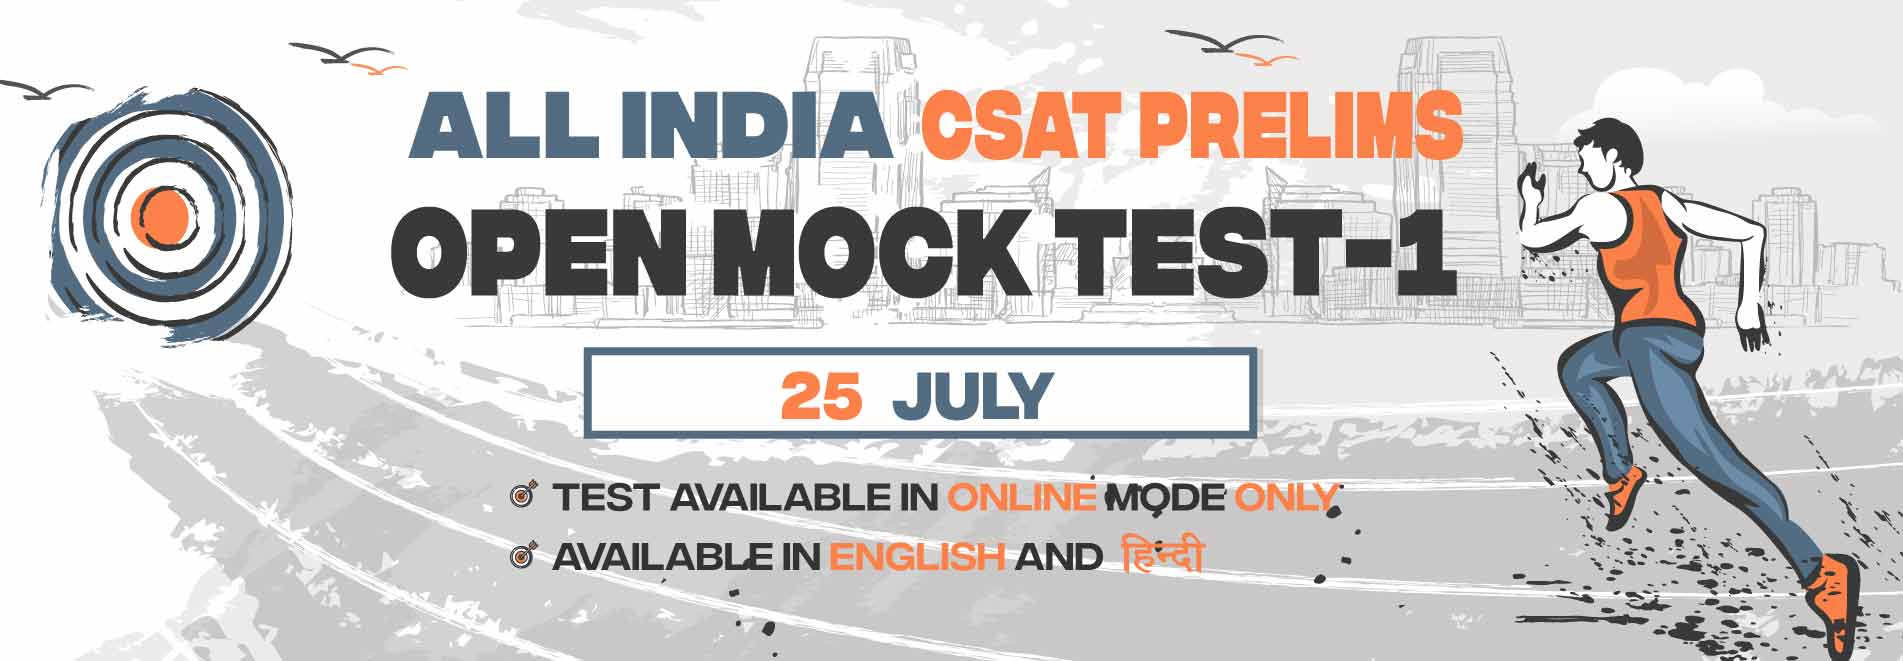 All India Open Mock Test